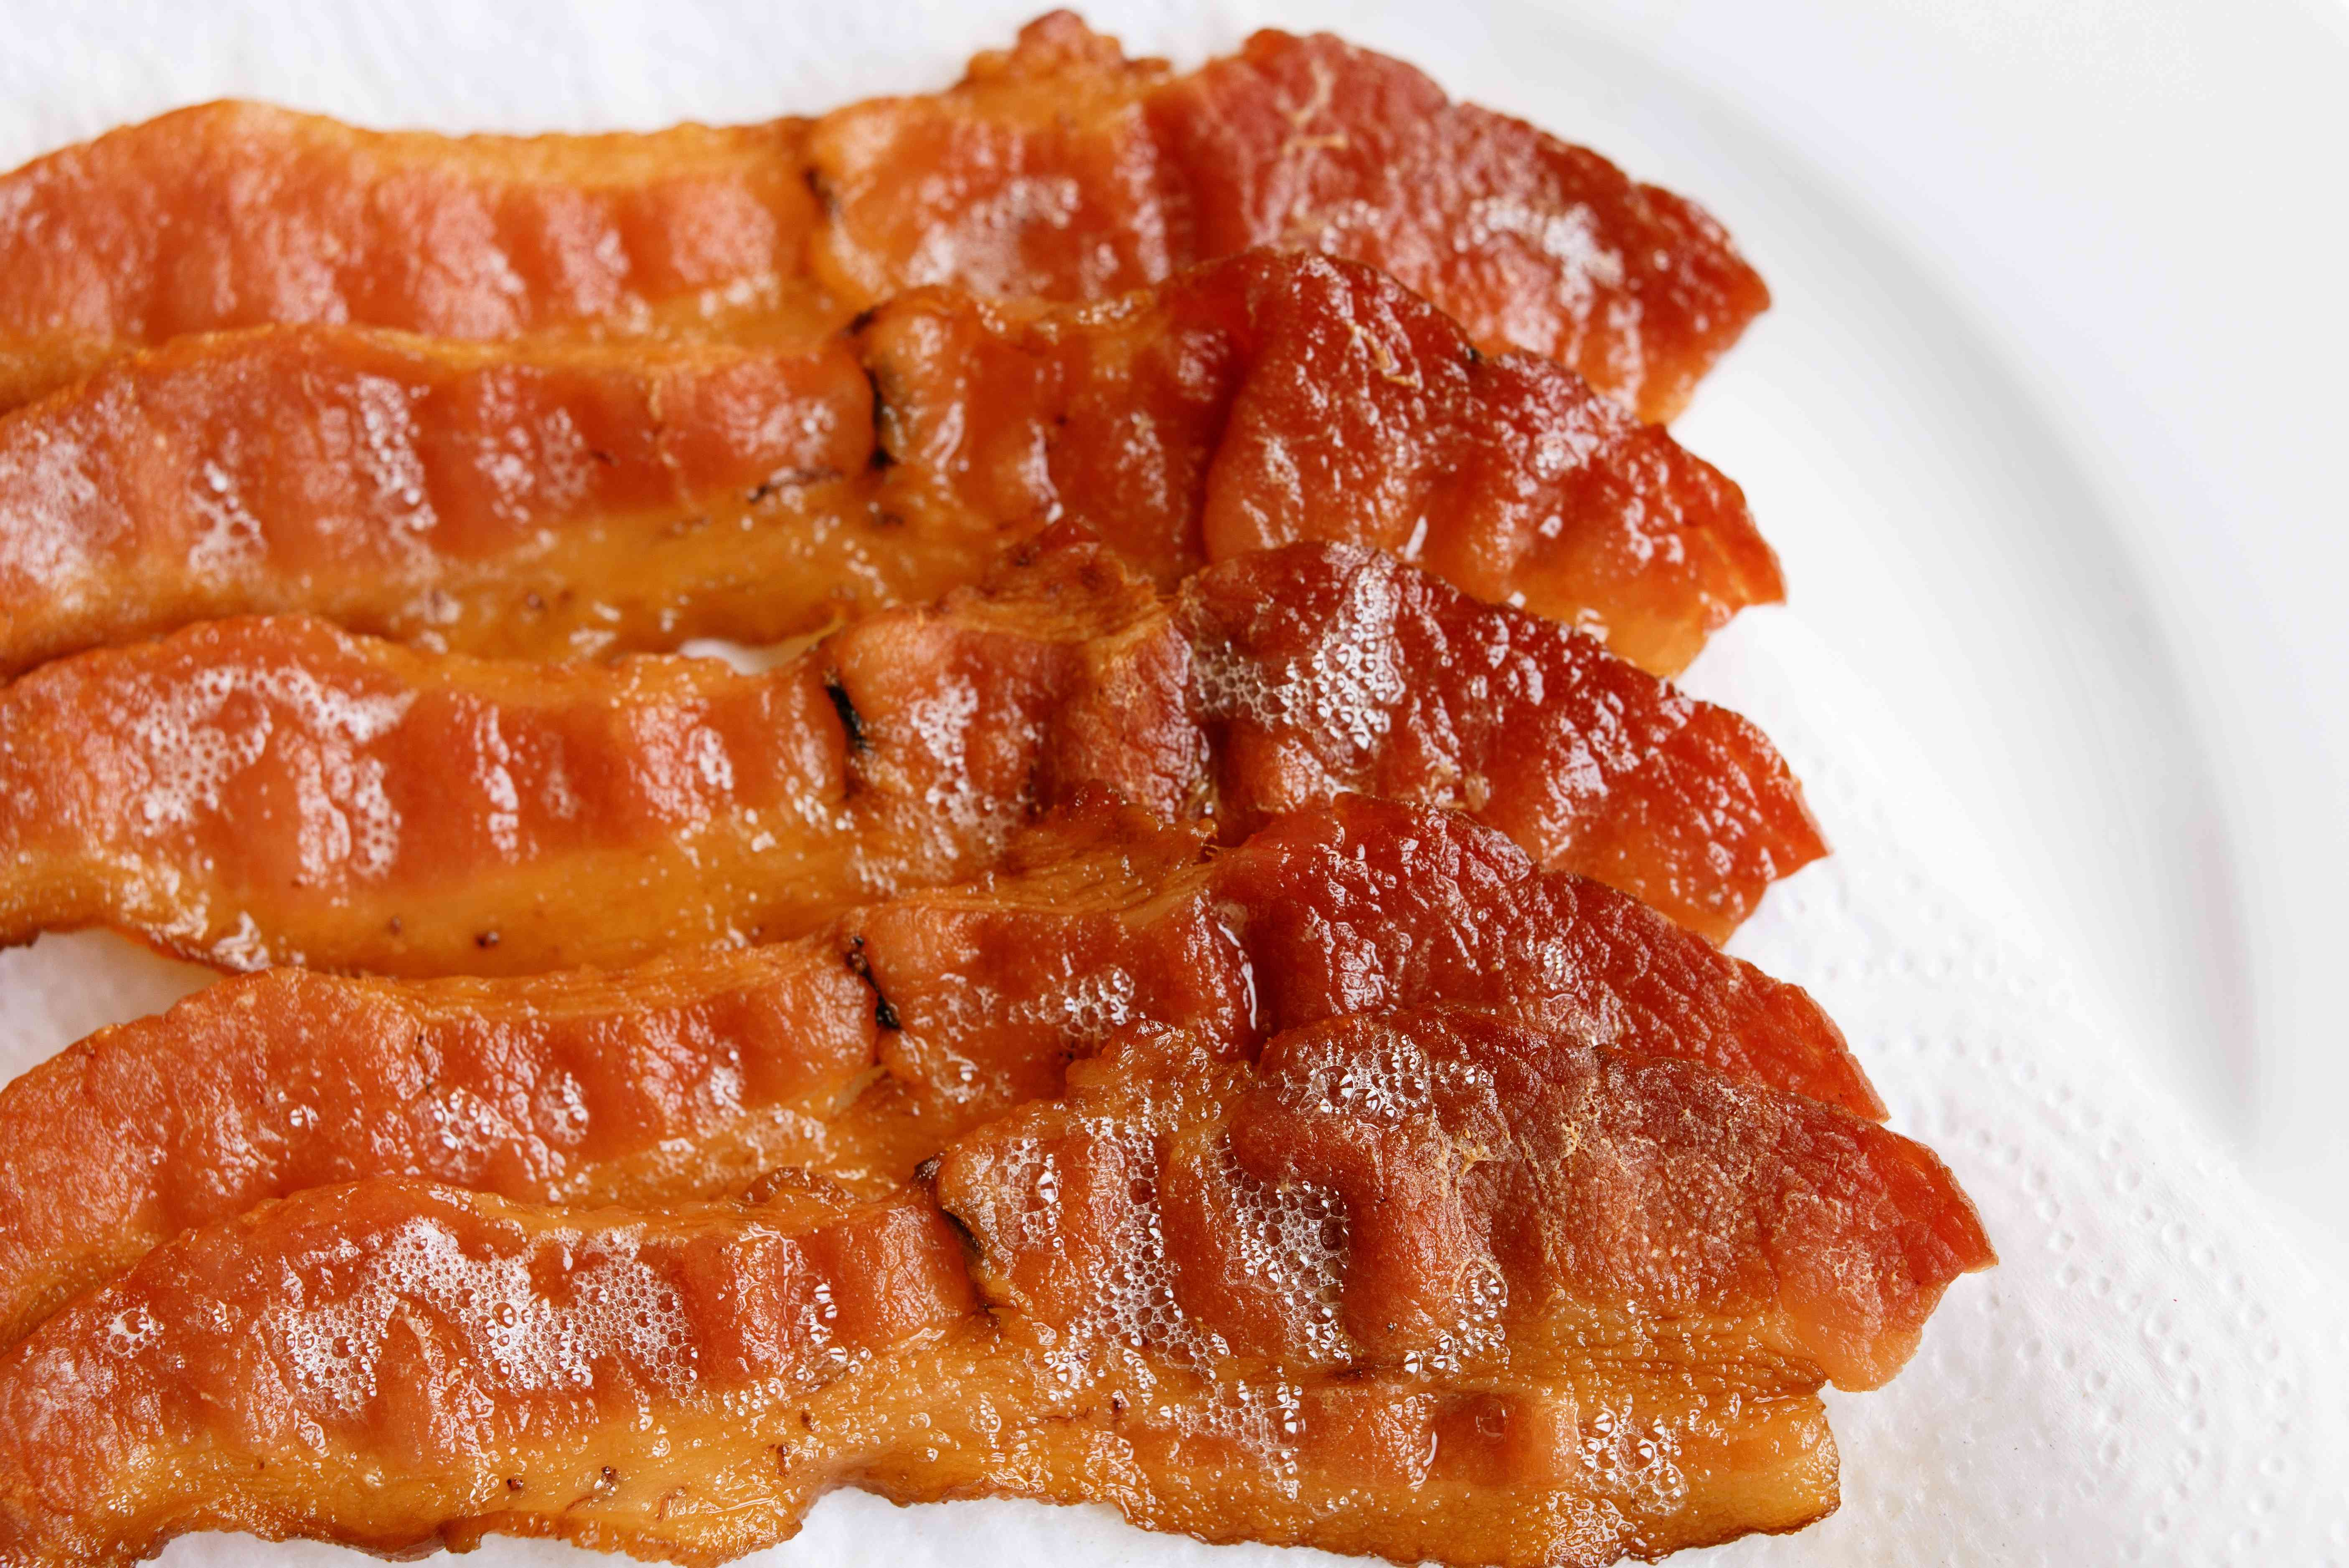 Strips of bacon covered in grease on paper towel and white plate closeup